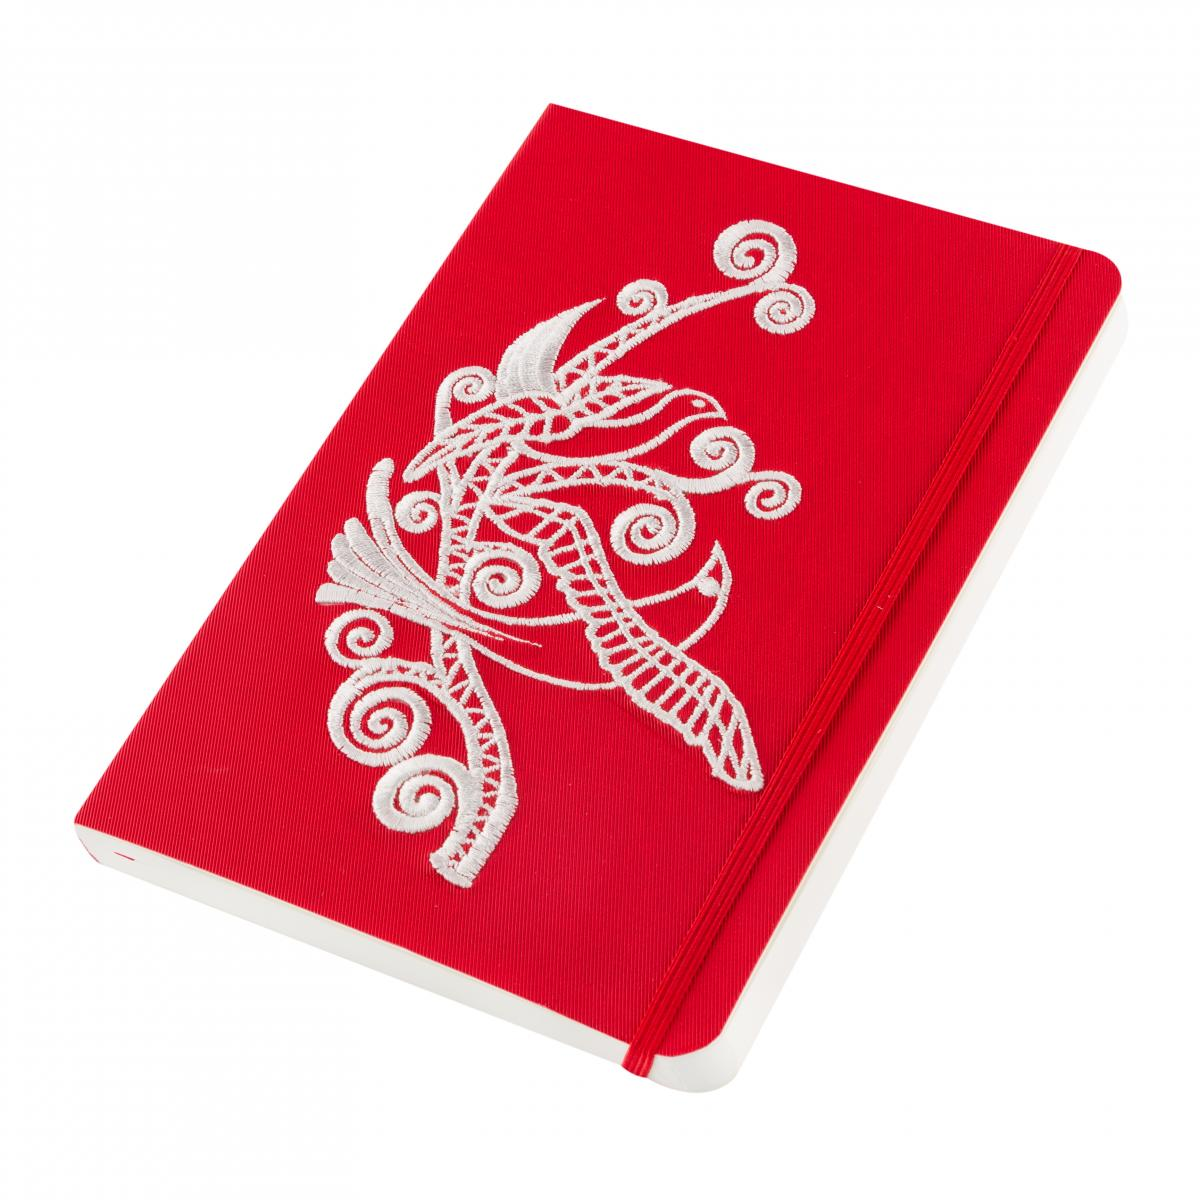 Eco-leather notebook with embroidered Paradise birds, red. Photo №2. | Narodnyi dim Ukraine